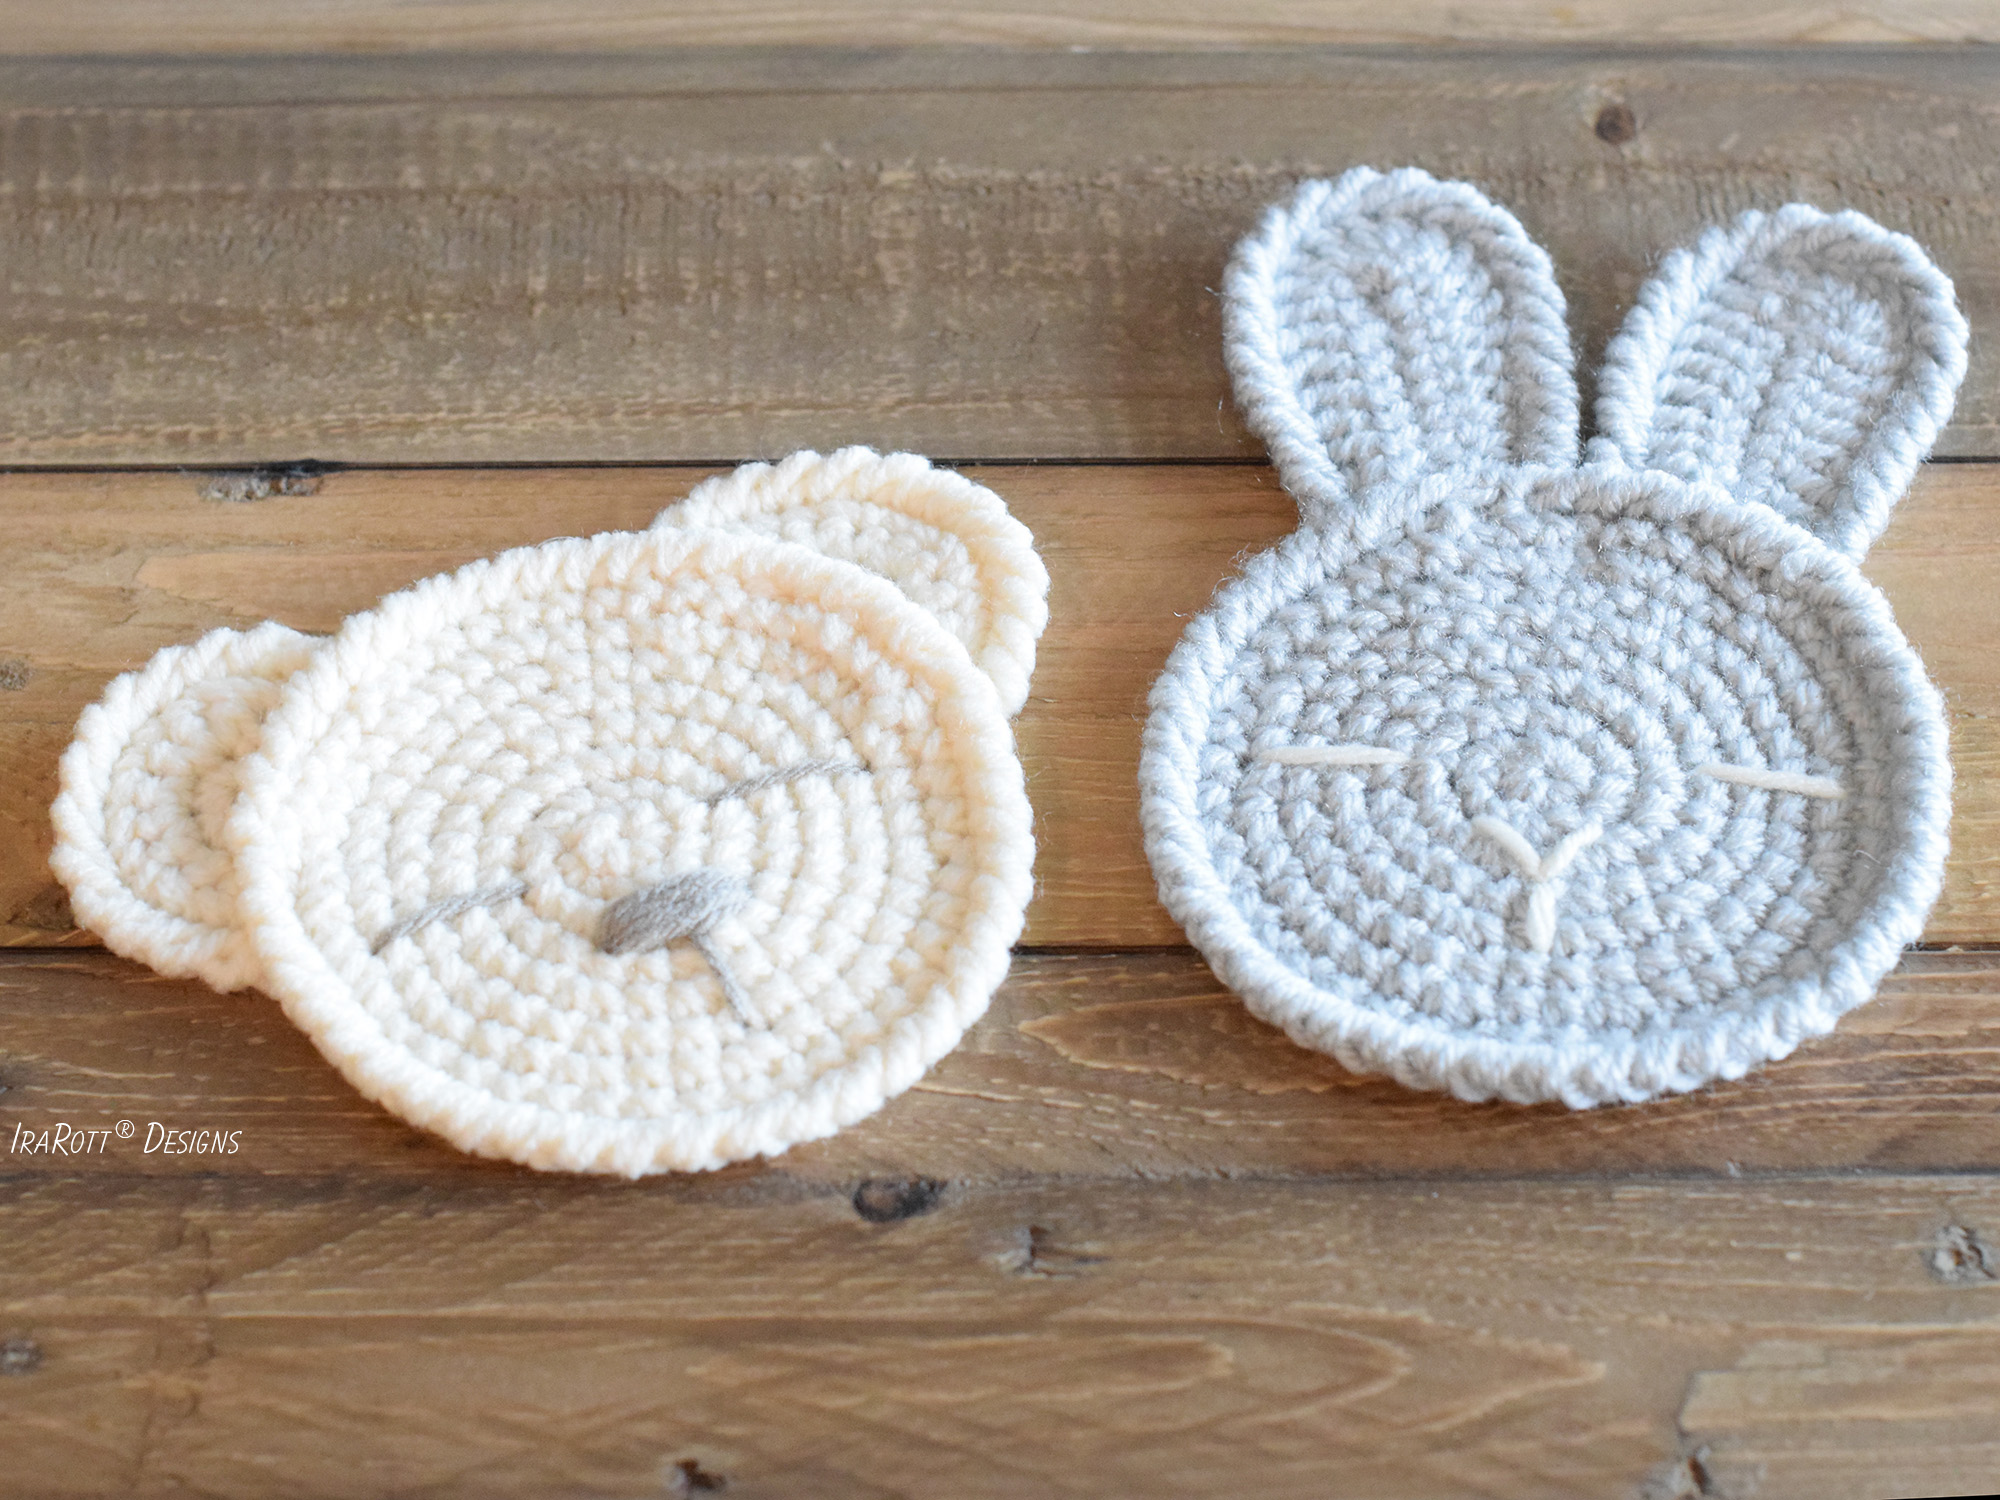 The Sleepy Bunny and Bear Coasters Free Crochet Pattern by IraRott